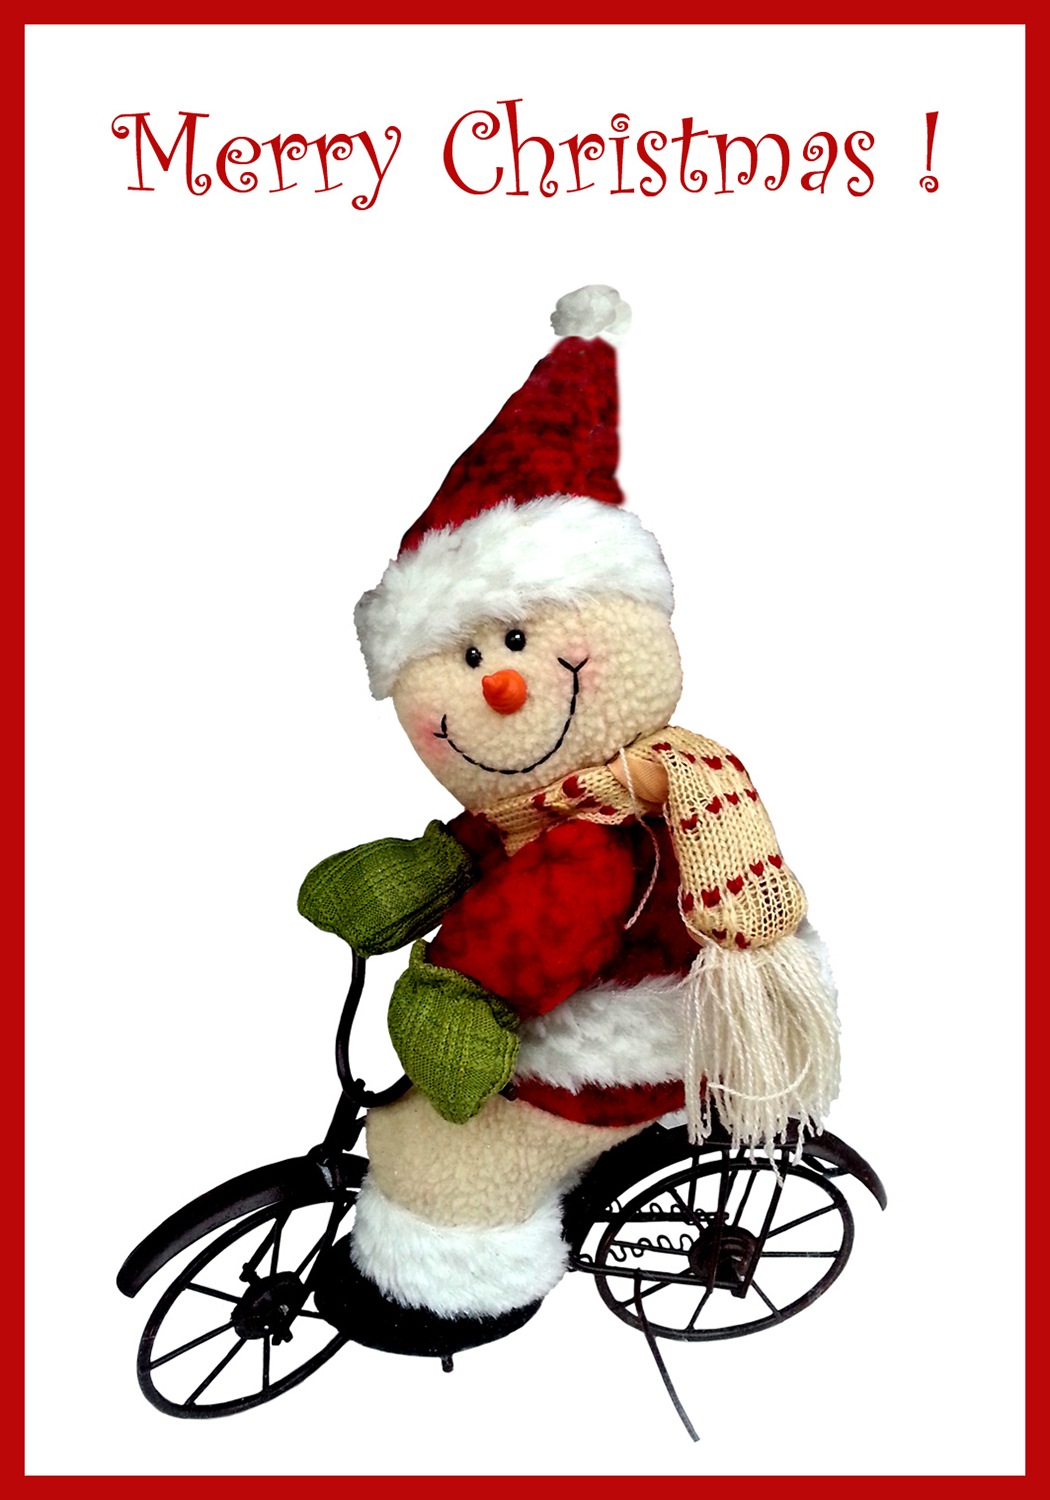 Free printable christmas cards free printable greeting cards santa on bike greeting card free printable christmas card kristyandbryce Images